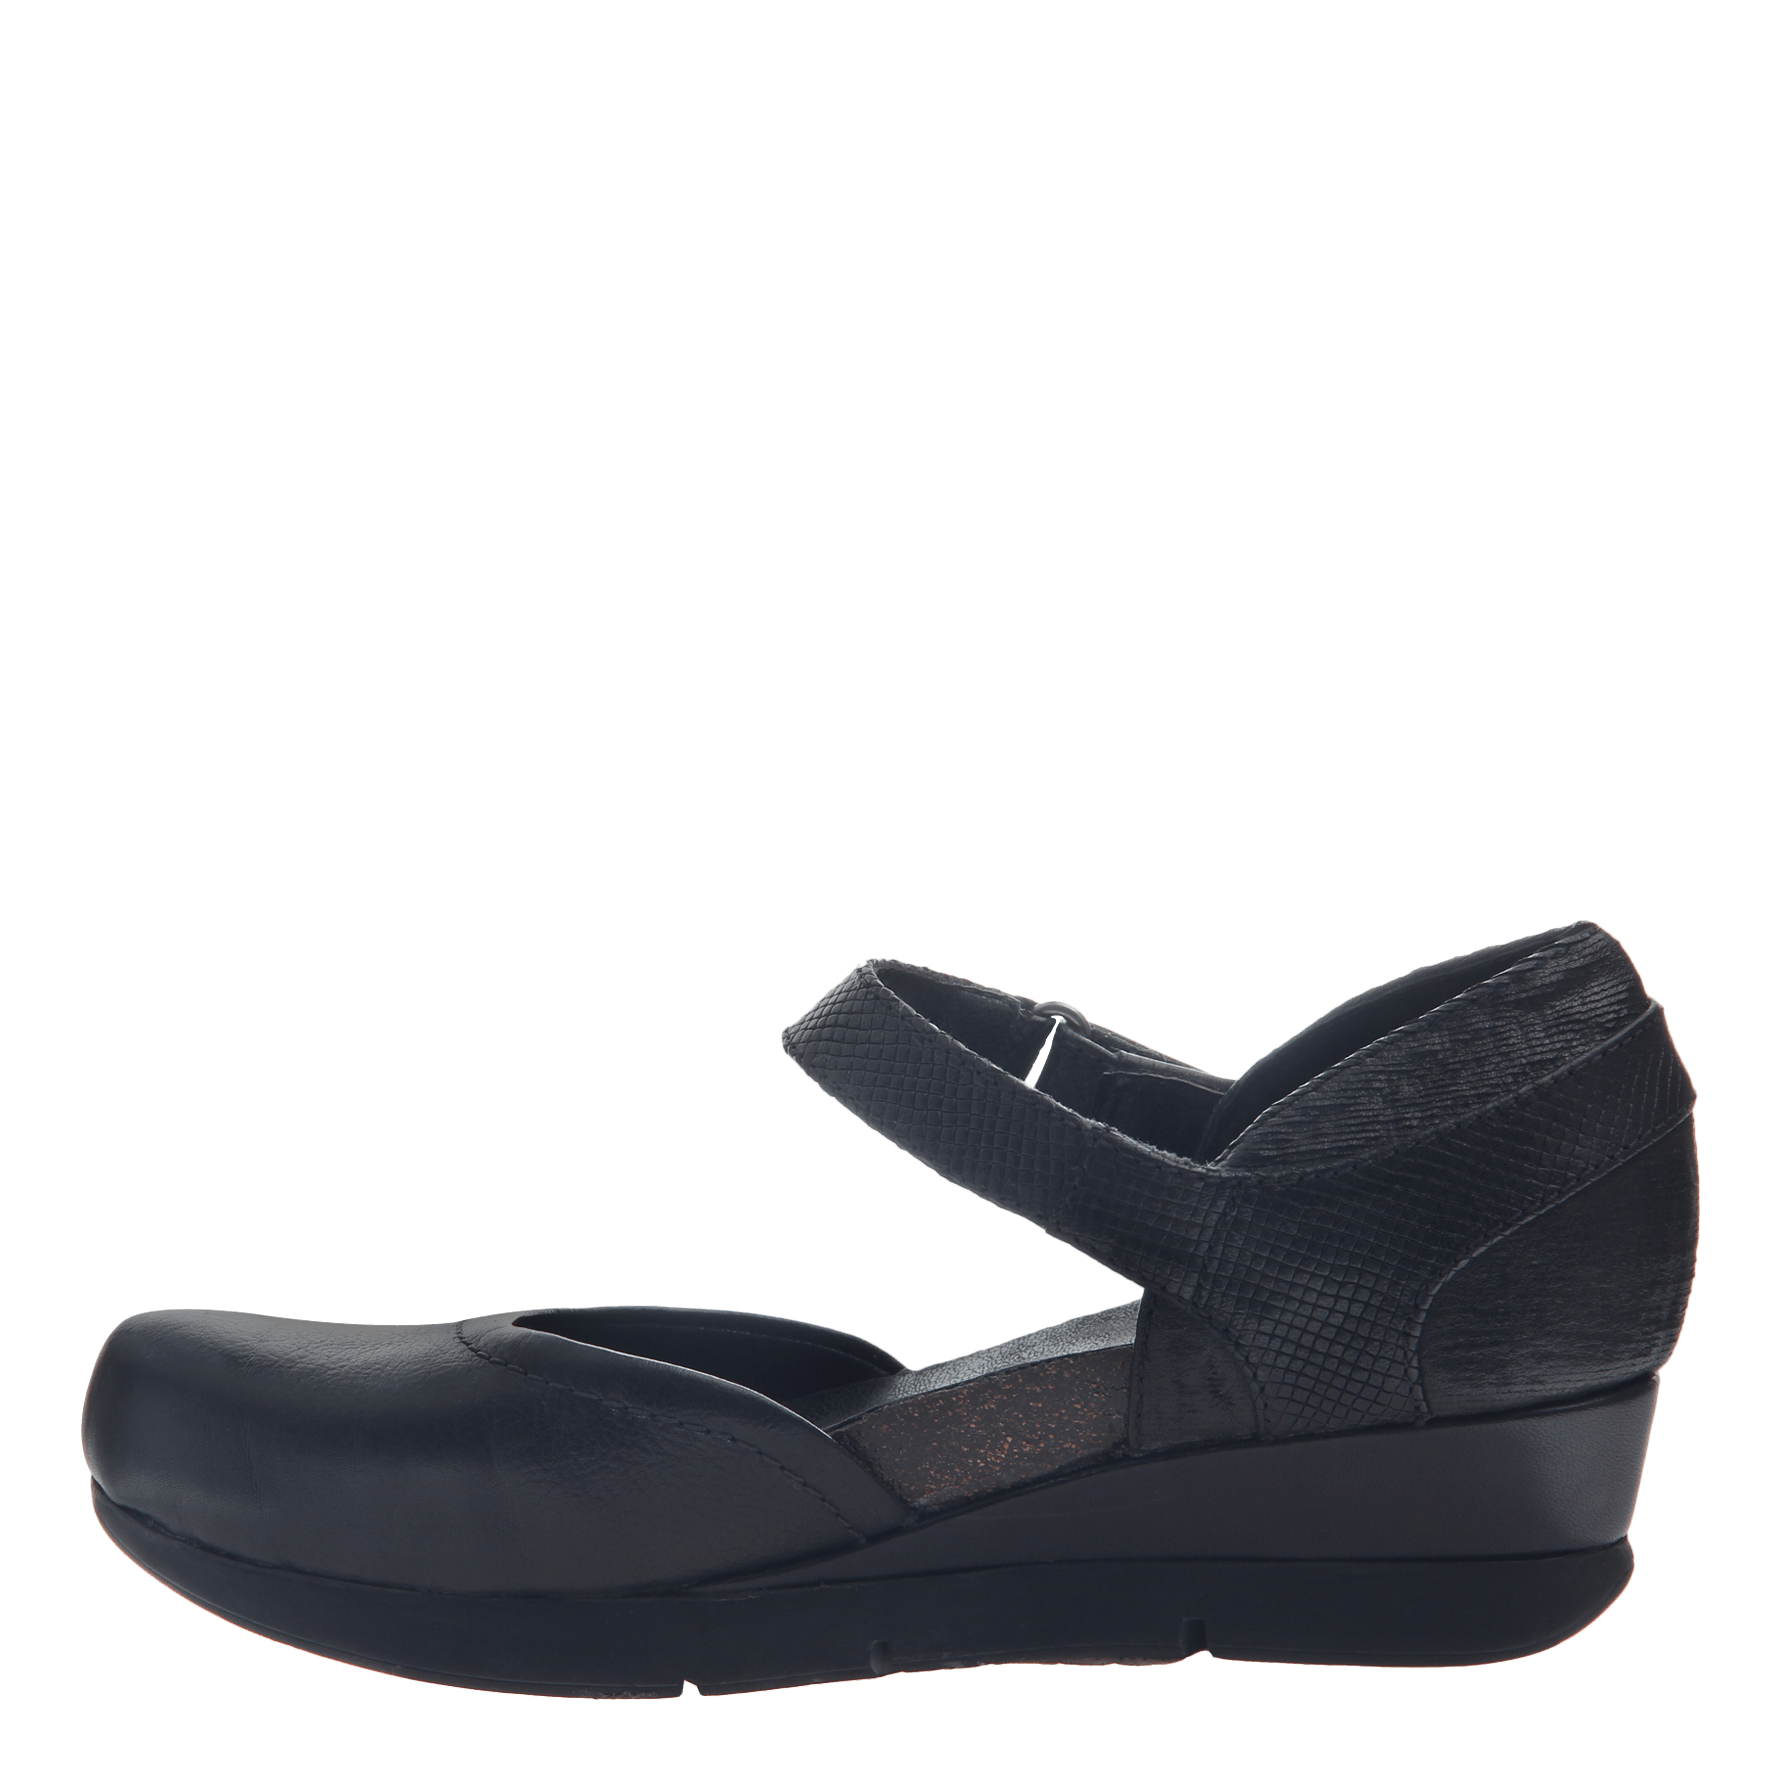 e0c3c7a43b98 Companion in black closed toe wedges womens shoes otbt png 1782x1782 Black  low wedges